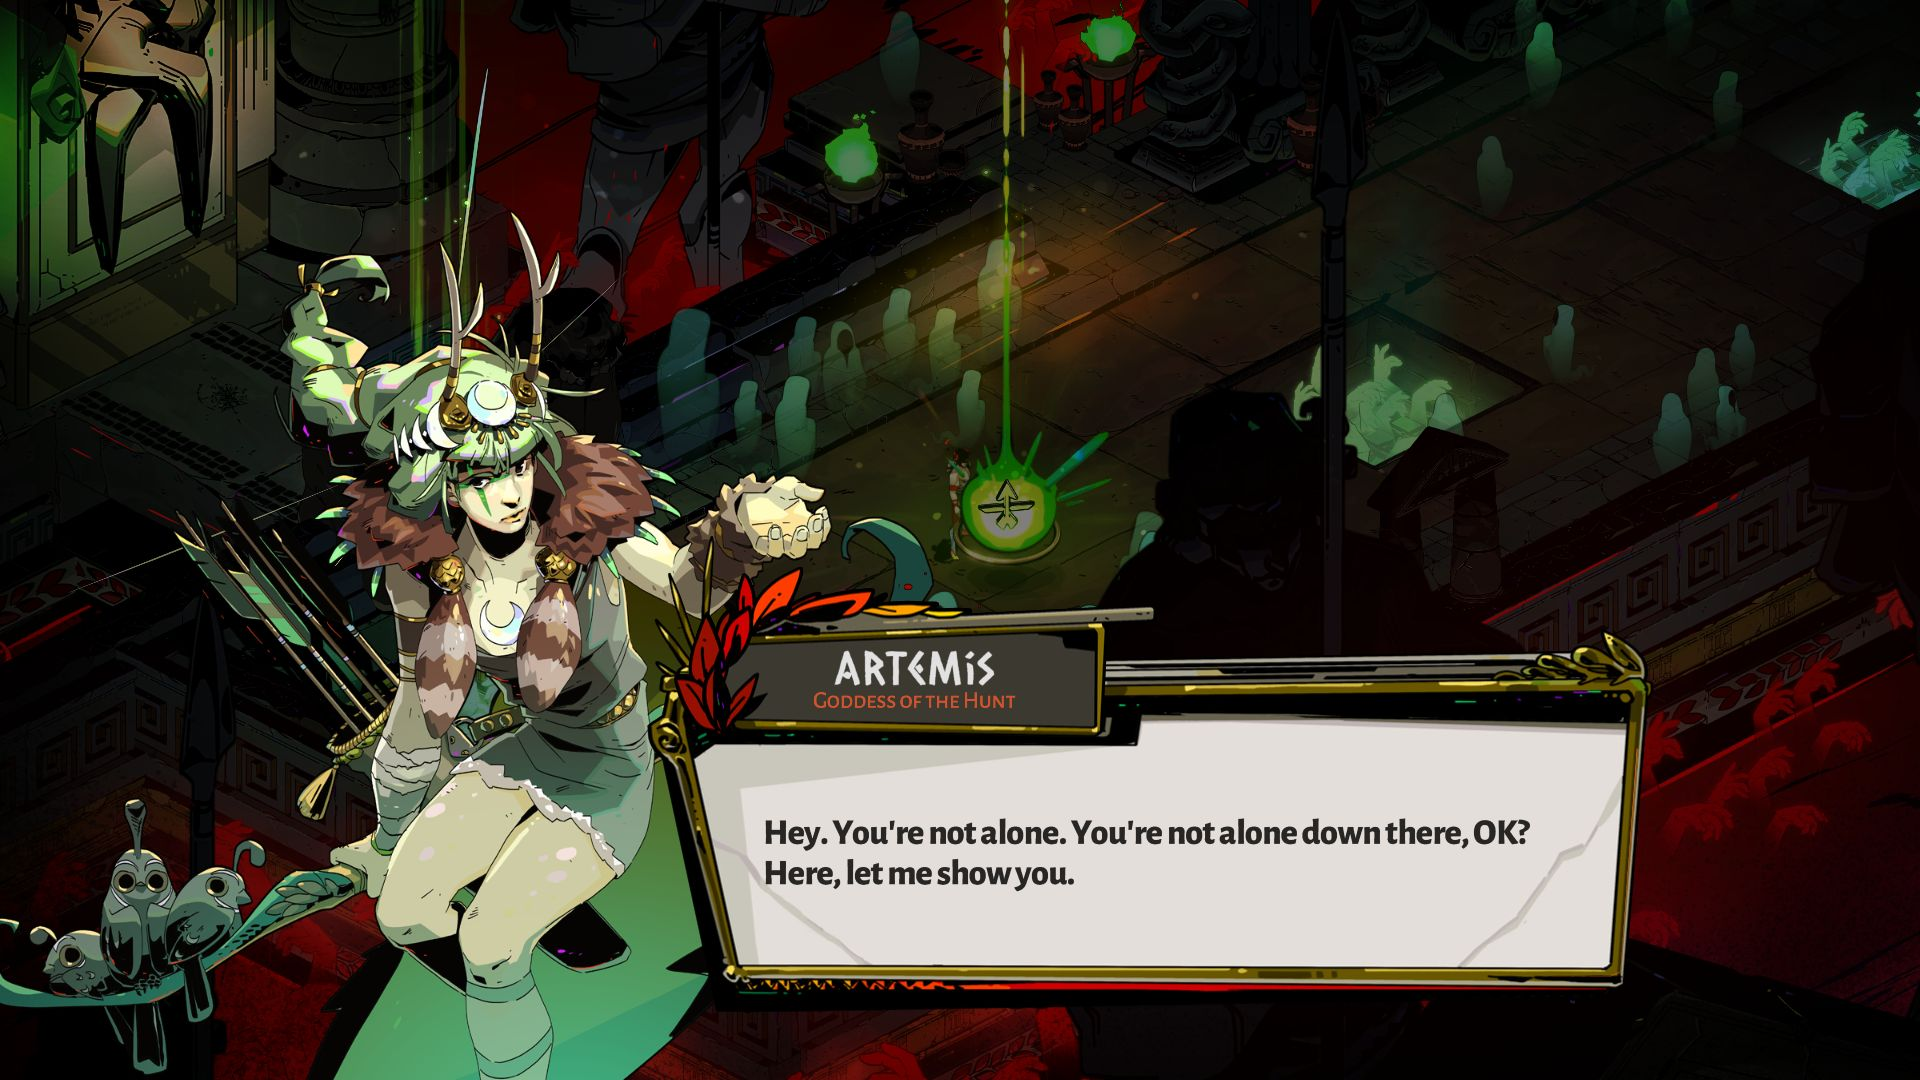 A screenshot of Zagreus speaking to Artemis. She is a young woman with slightly green tinted skin, a plain green tunic and a fur collar, with green hair and a headband adorned with antlers. She is carrying a bow and quiver of arrows.